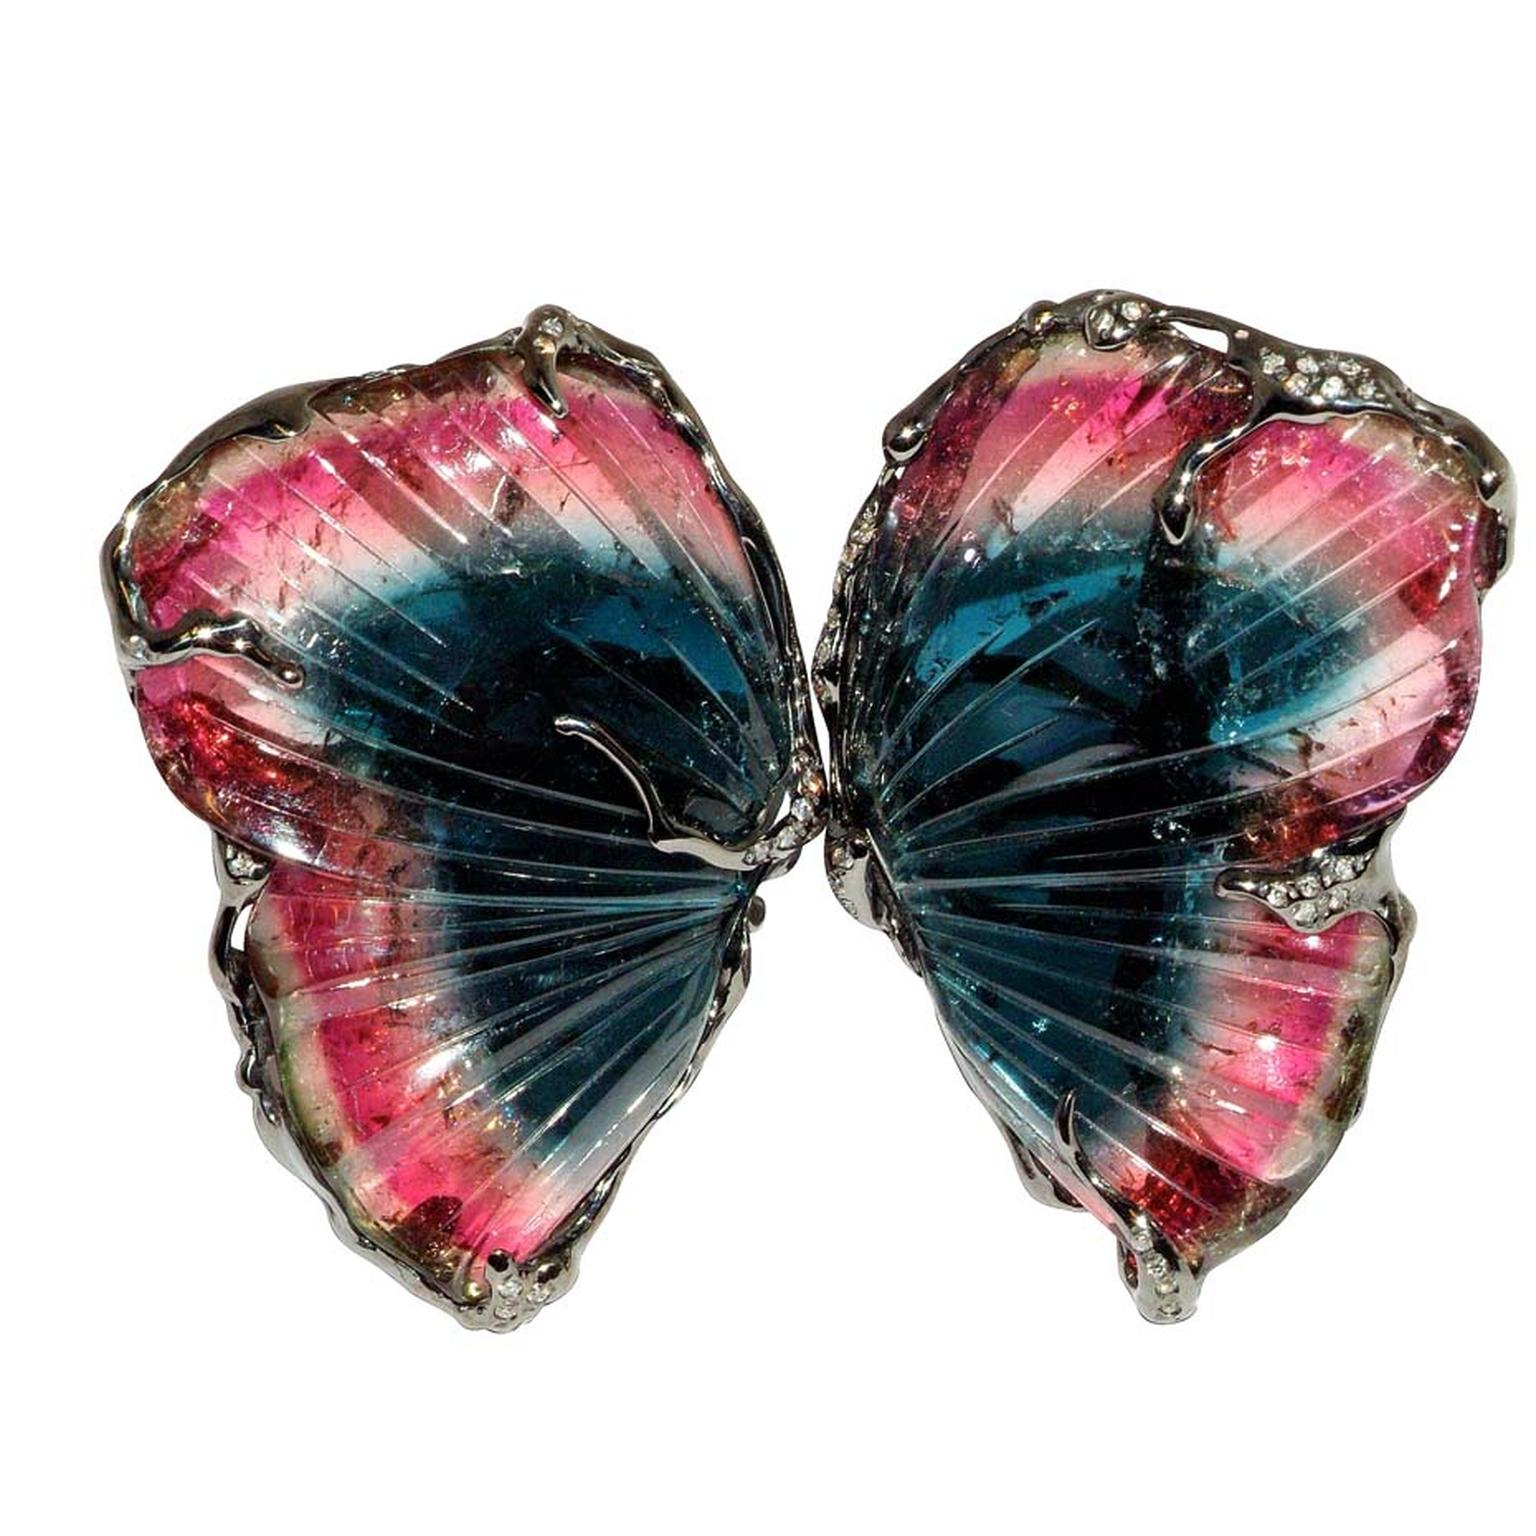 Lucifer Vir Honestus will be showing this impressive Double Butterfly ring in black gold with tourmaline slices and diamonds ($17,210) at the Couture Show Las Vegas